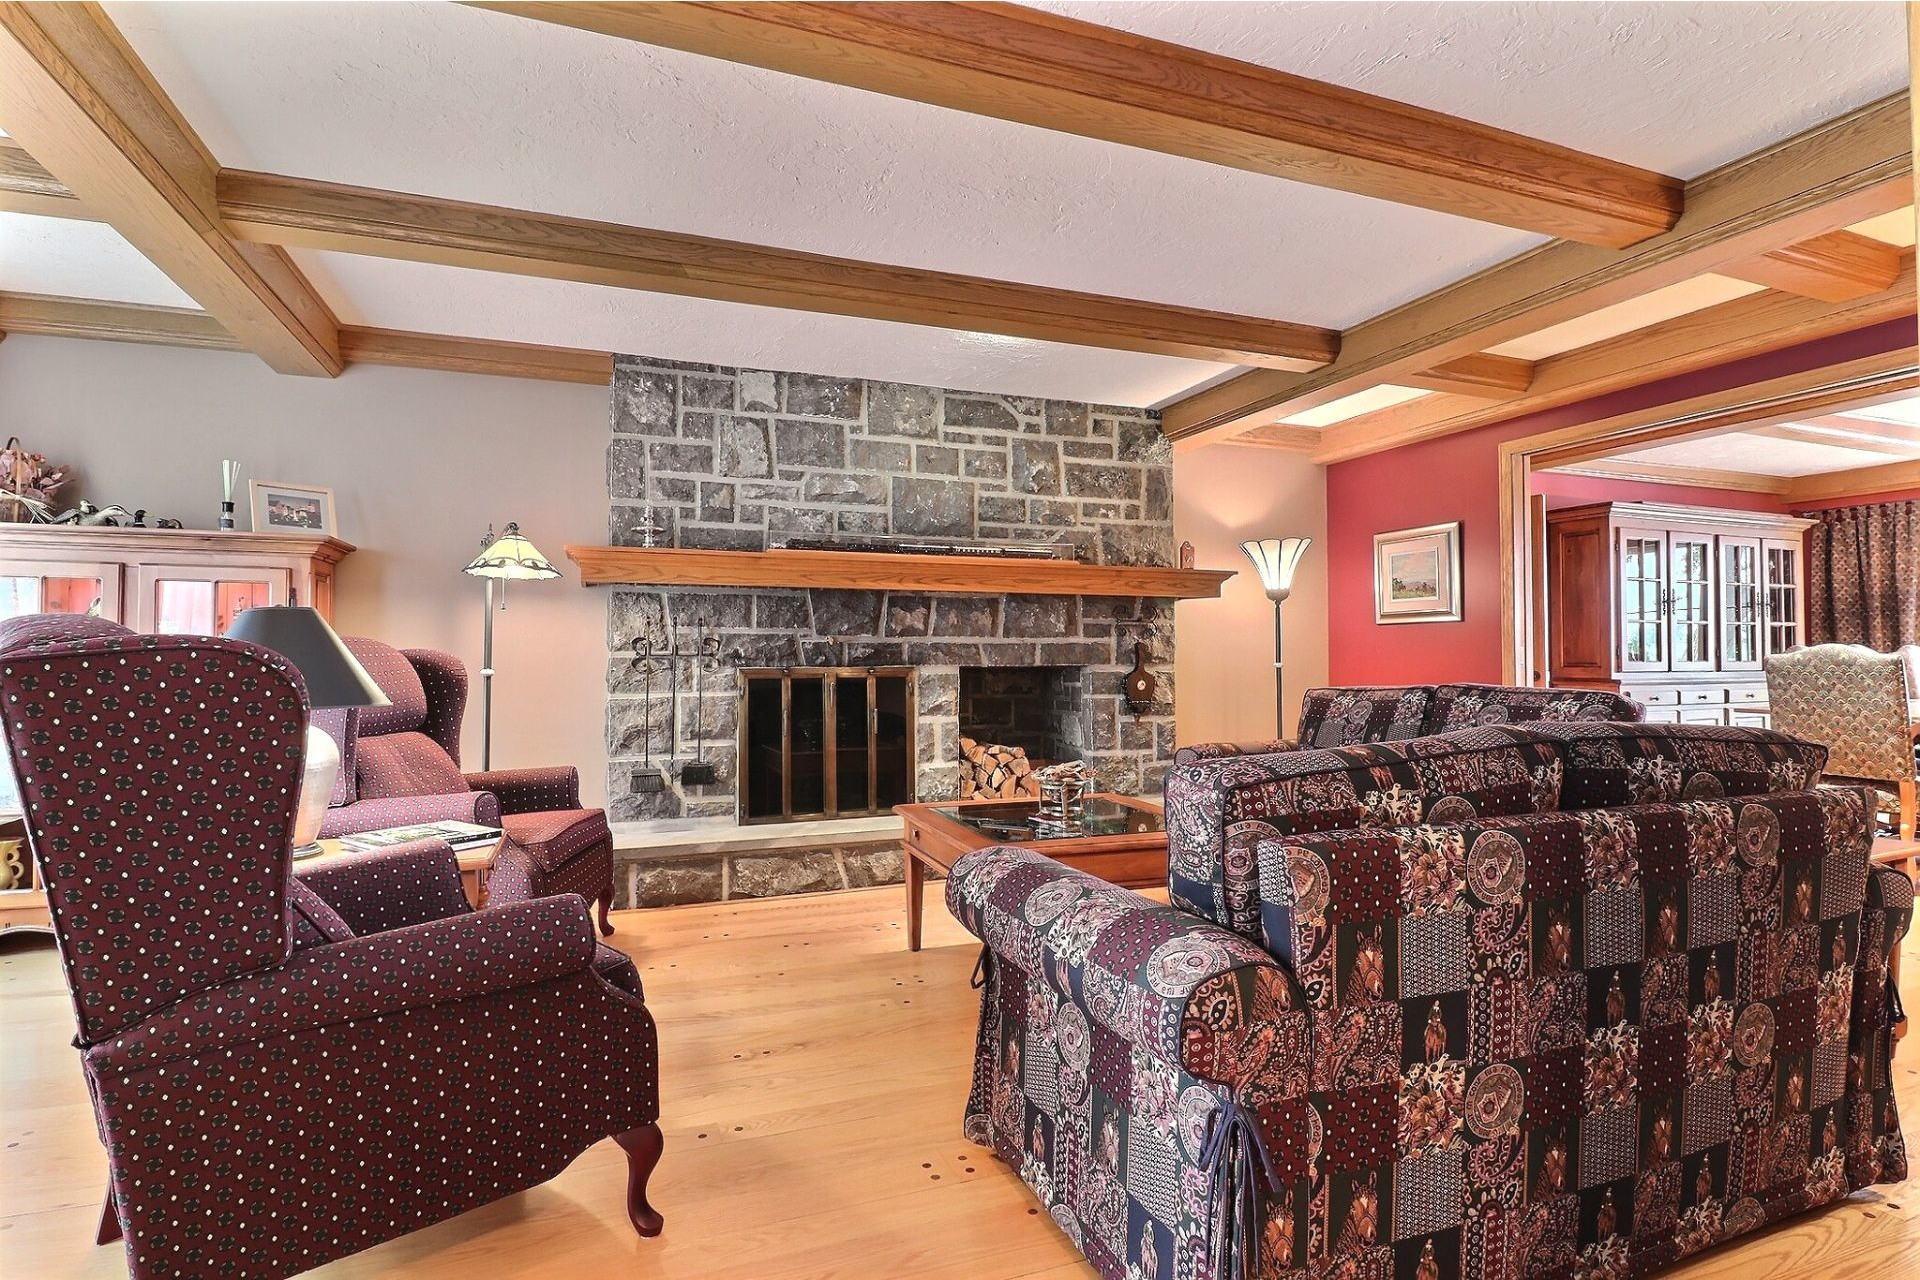 image 7 - House For sale Duvernay Laval